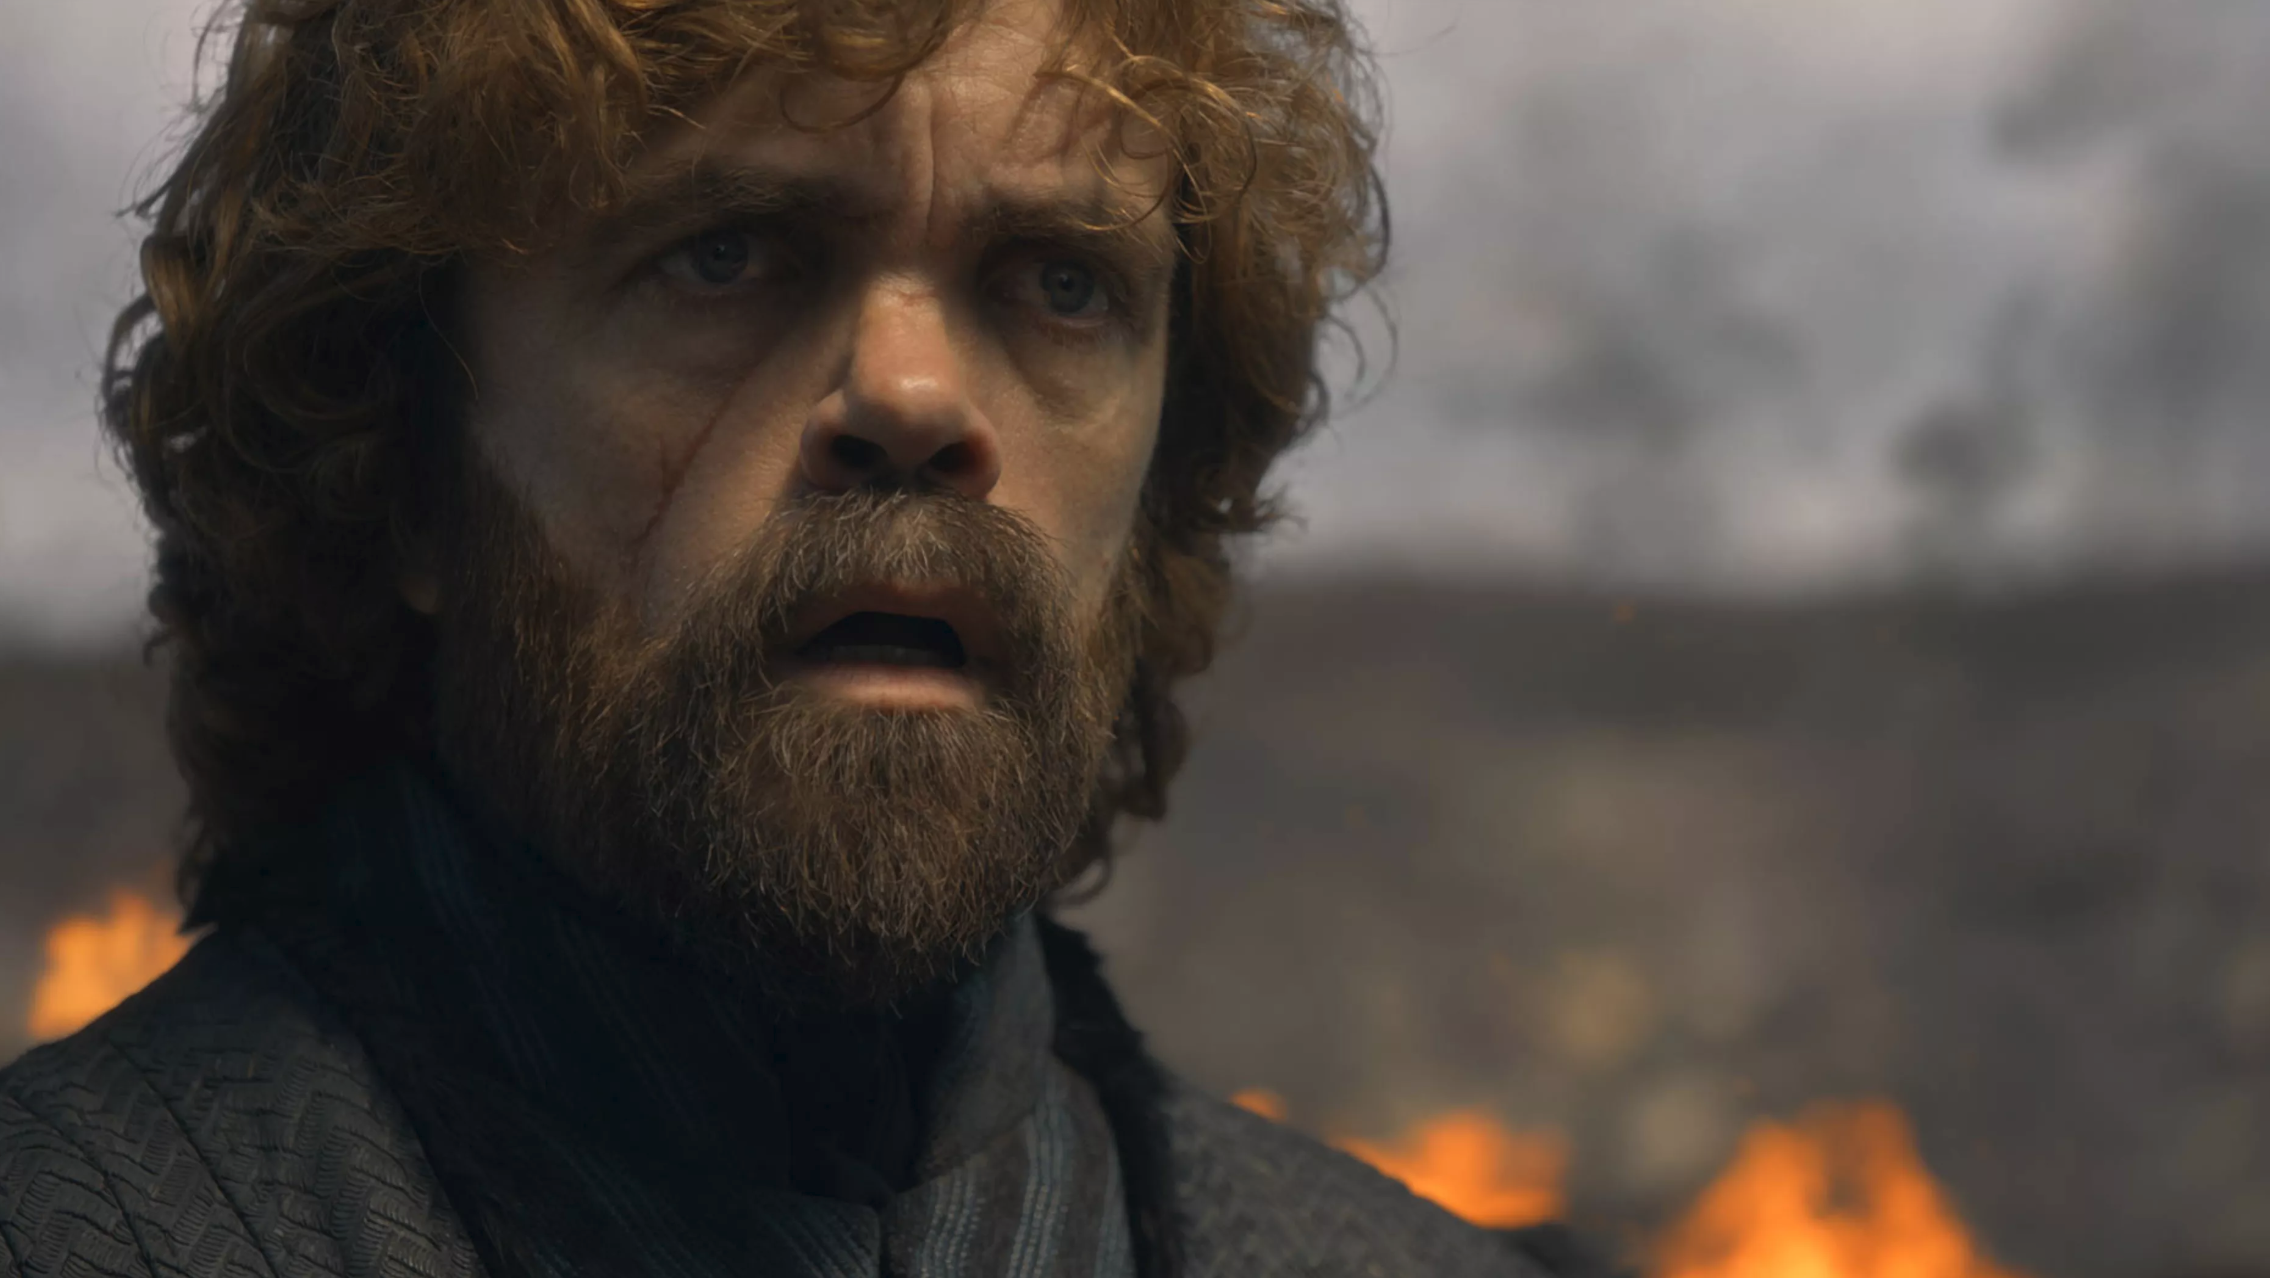 game-of-thrones-season-8-episode-6-spoilers-deaths-tyrion-leaks-plot-summary